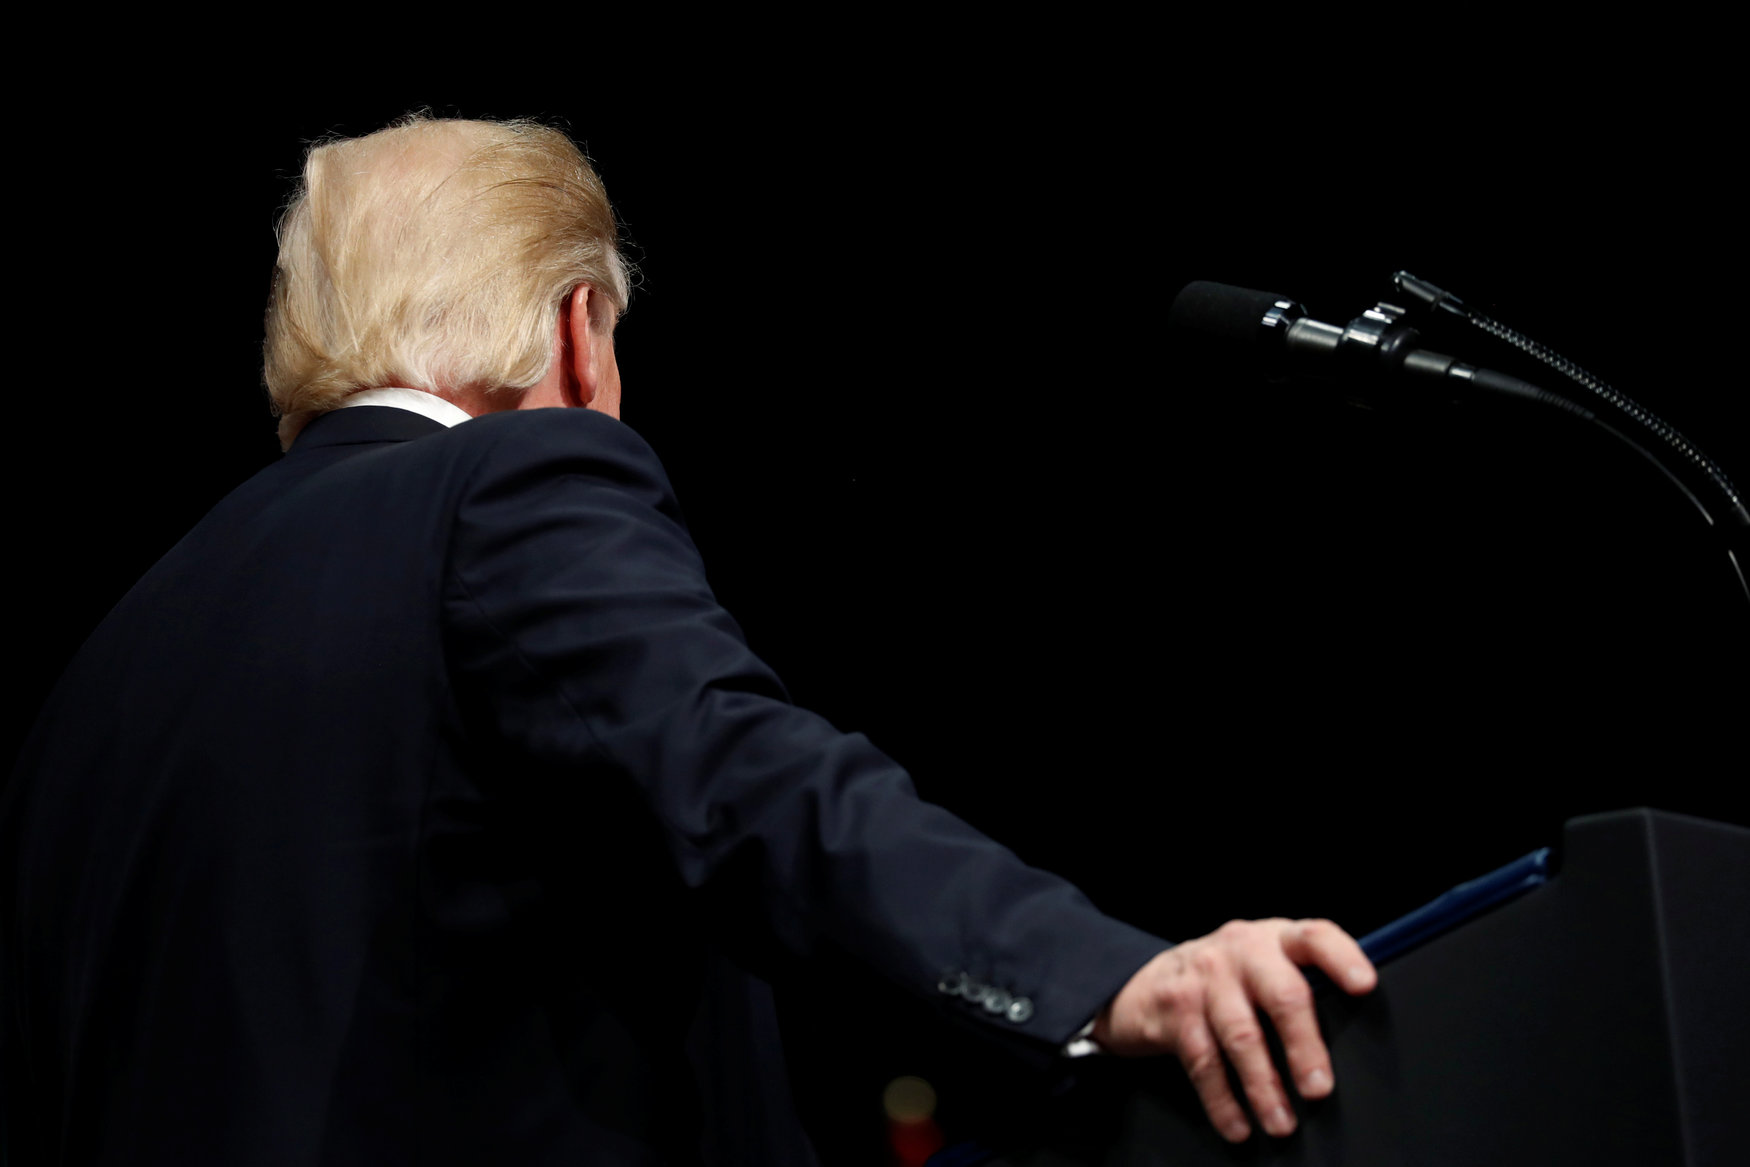 U.S. President Donald Trump turns to address others onstage during his remarks at a graduation ceremony at the FBI Academy on the grounds of Marine Corps Base Quantico in Quantico, Virginia, U.S. December 15, 2017. REUTERS/Jonathan Ernst